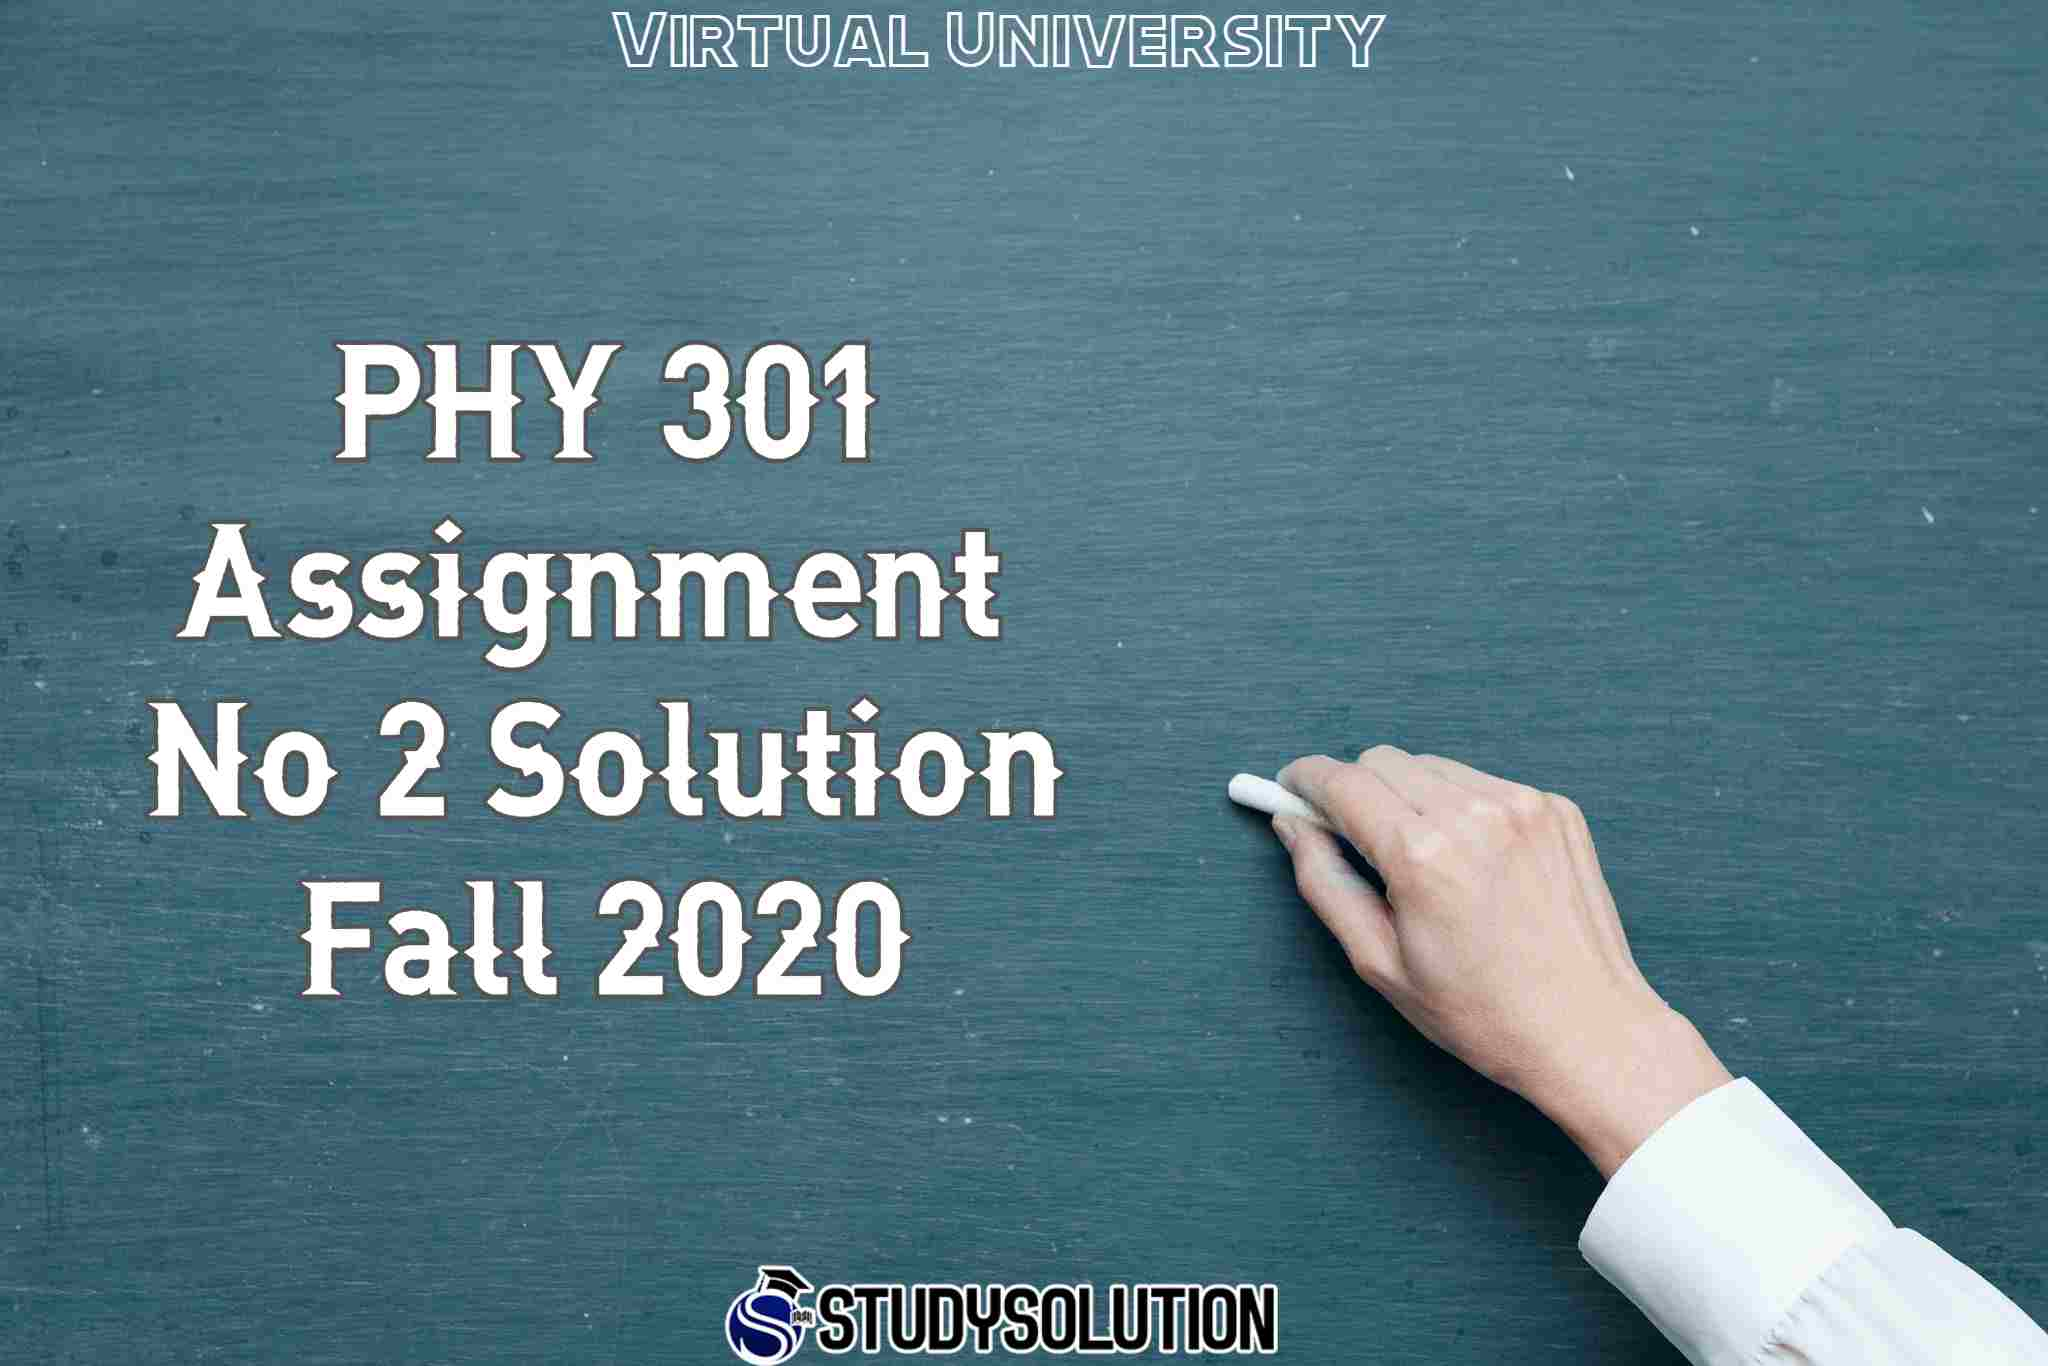 PHY 301 Assignment No 2 Solution Fall 2020